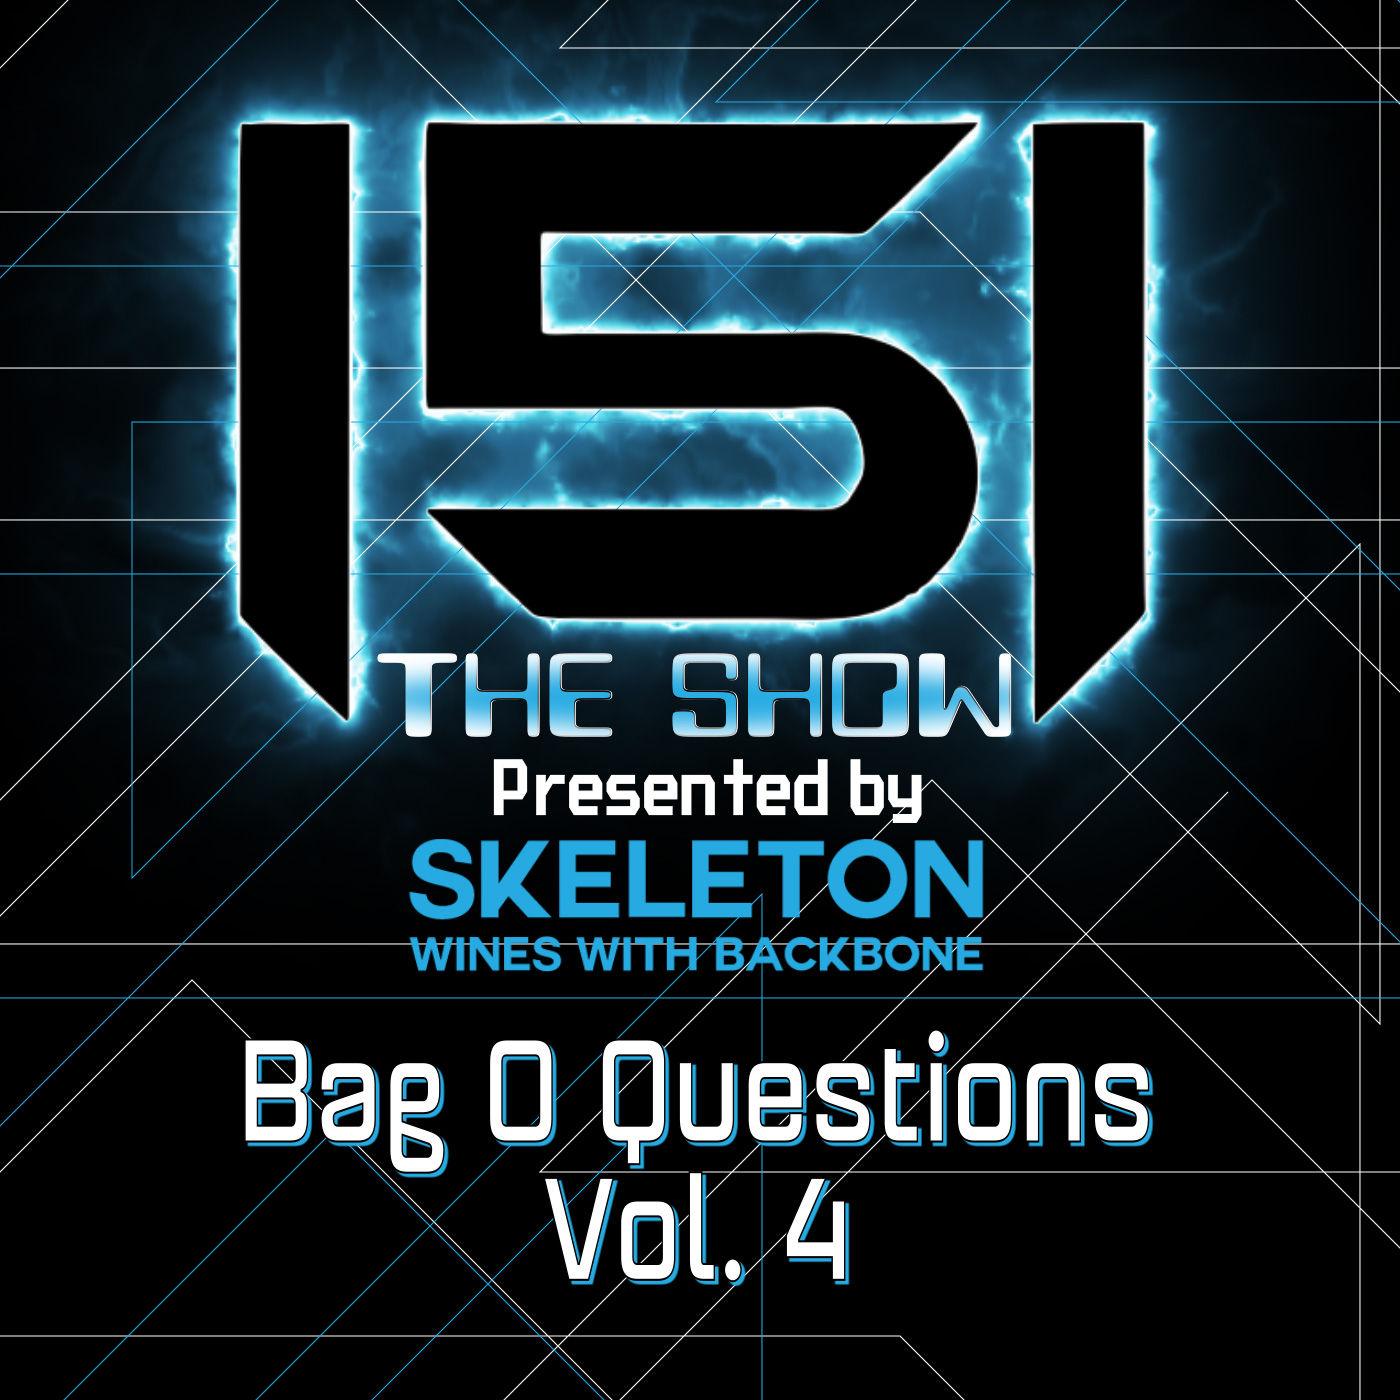 Bag O Questions Vol. 4